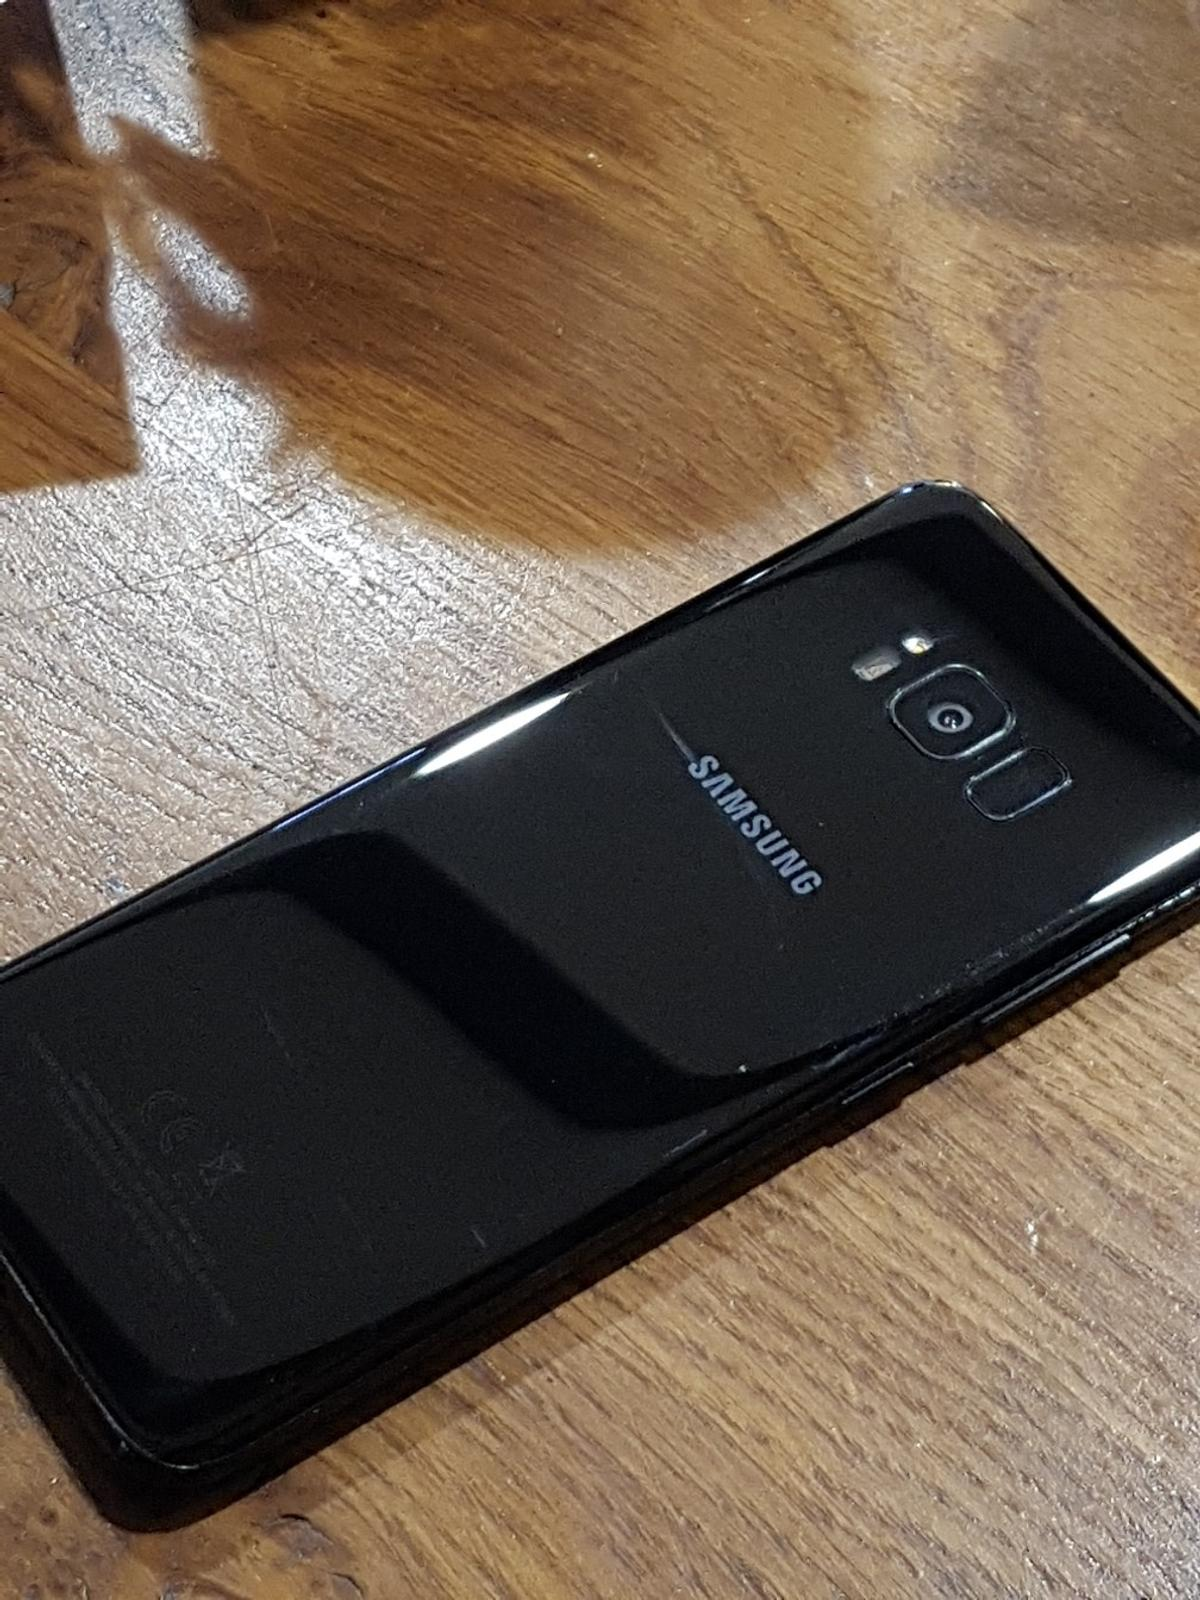 Samsung Galaxy S8 Sim Karte.Samsung Galaxy S8 In Tn6 Wealden For 210 00 For Sale Shpock